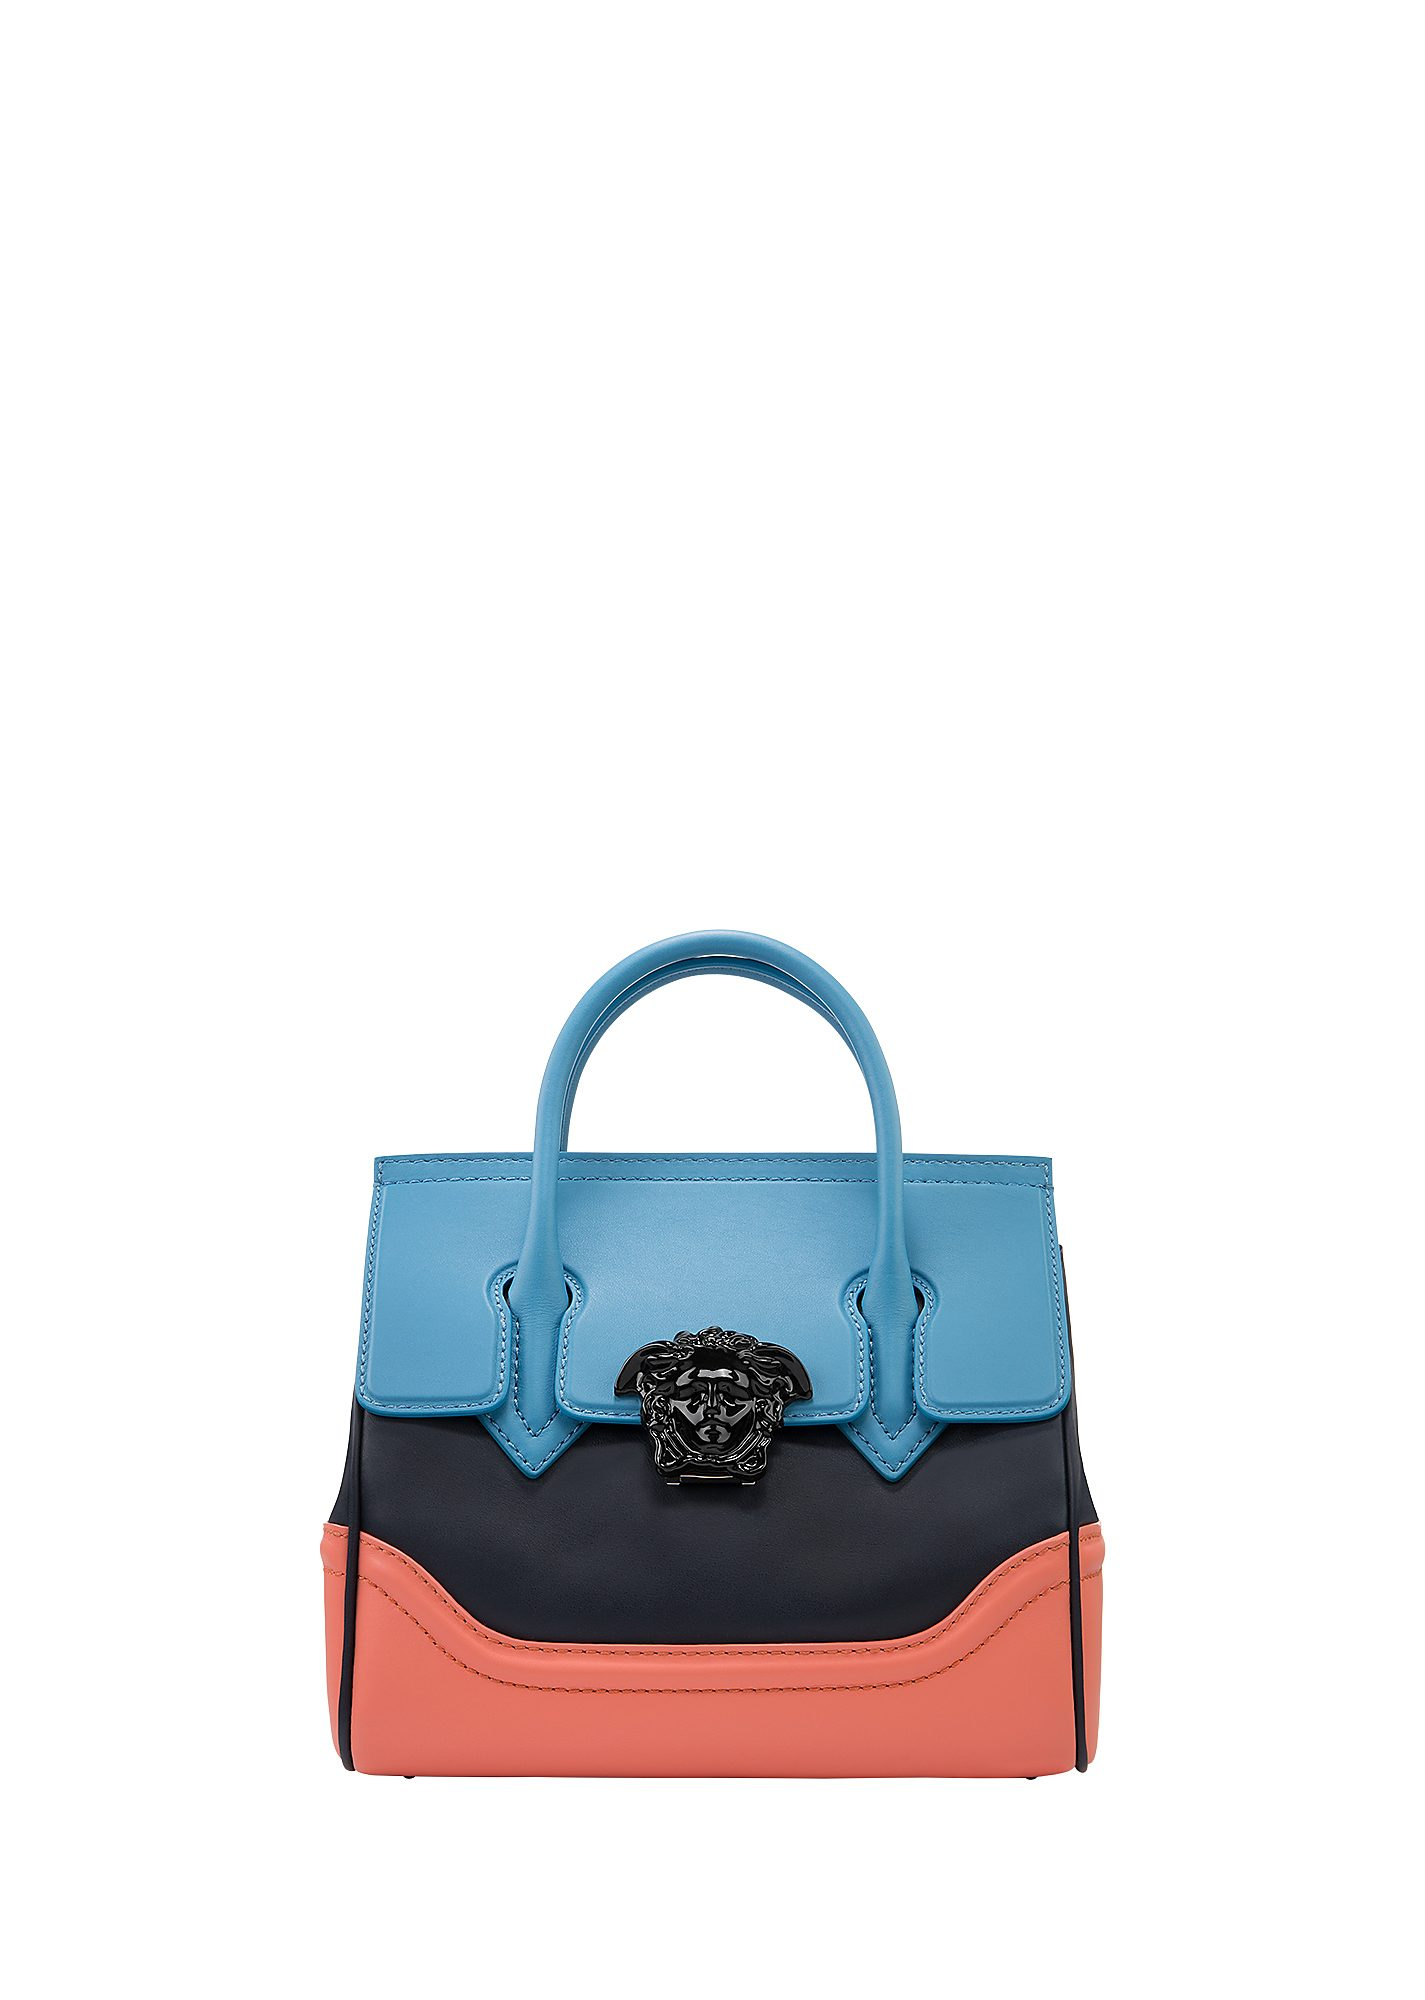 Versace Palazzo Empire Medium Bag In Kafjp  a169d3dc78827